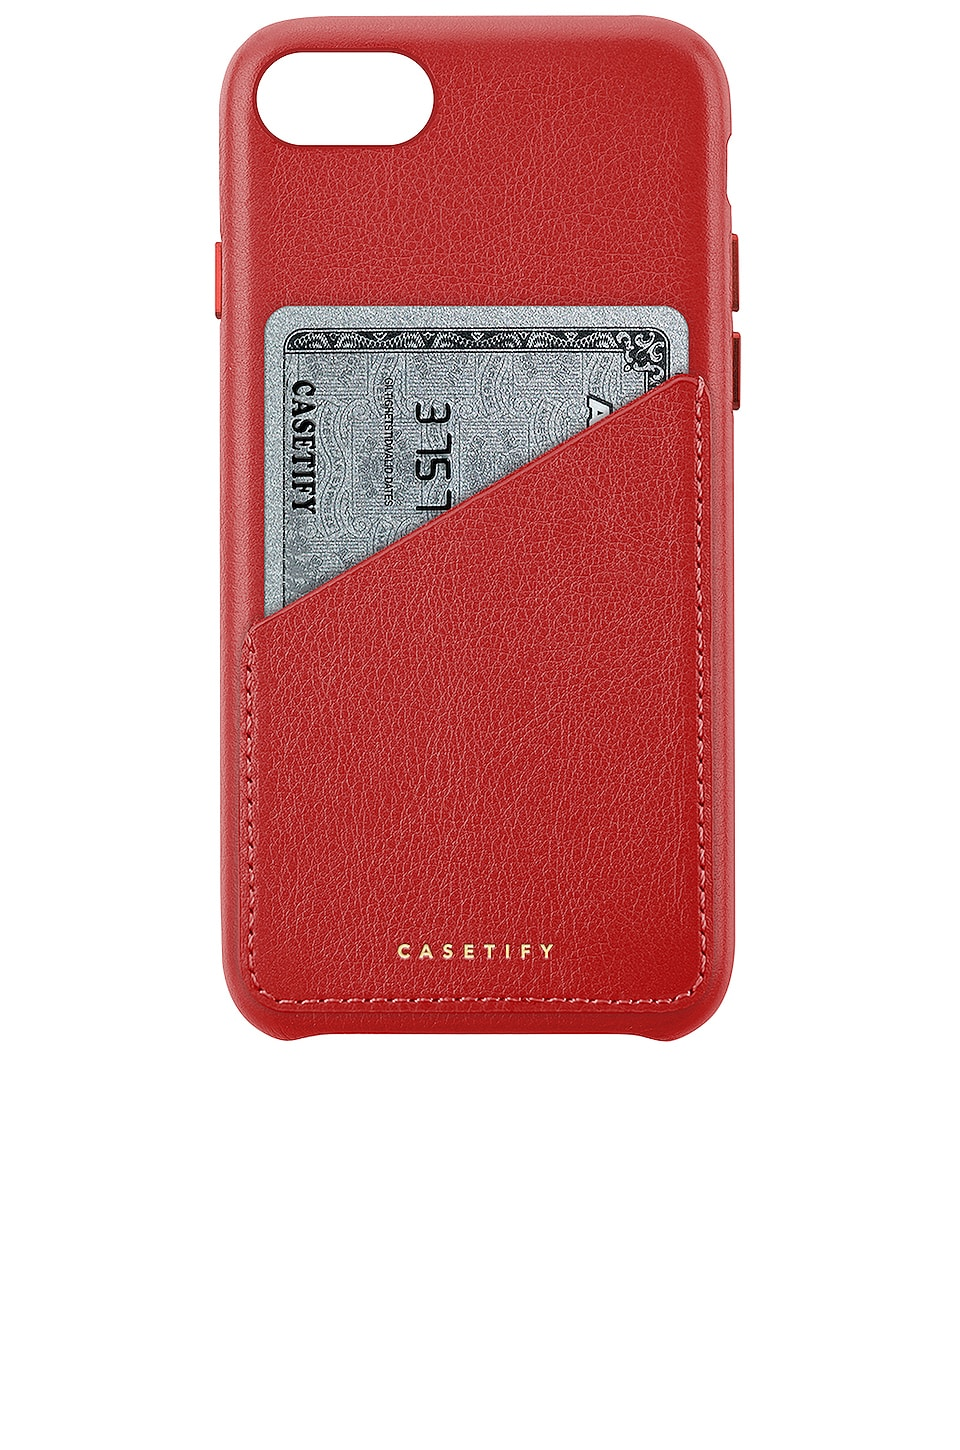 Leather Card Iphone 6/7/8 Case, Red